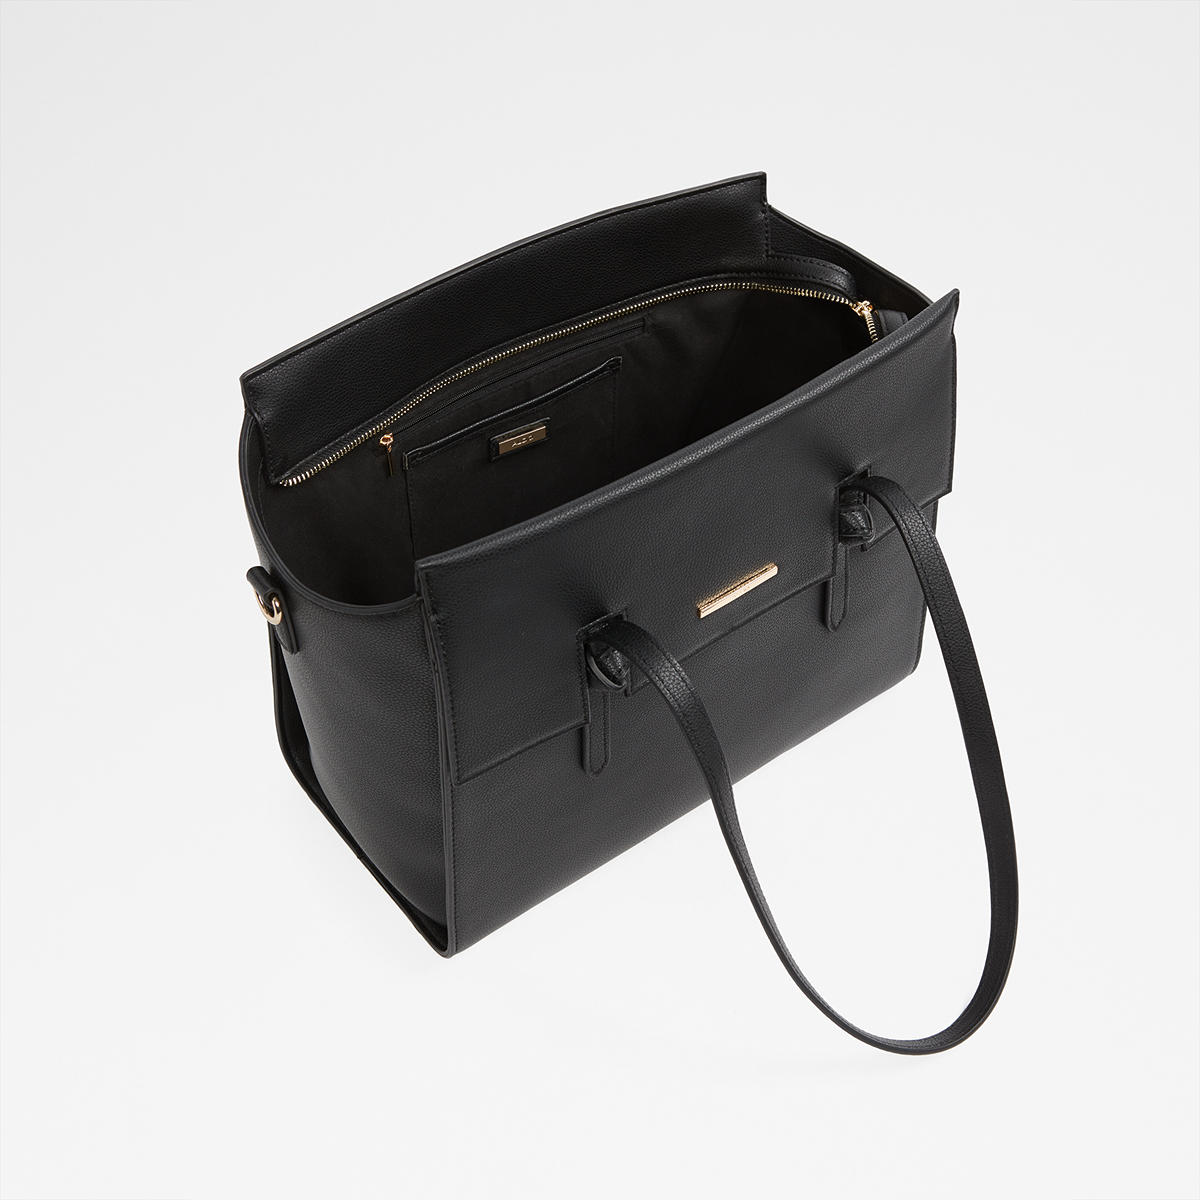 6d30a3f7034 Elaycien Midnight Black Women's Handbags | Aldoshoes.com US